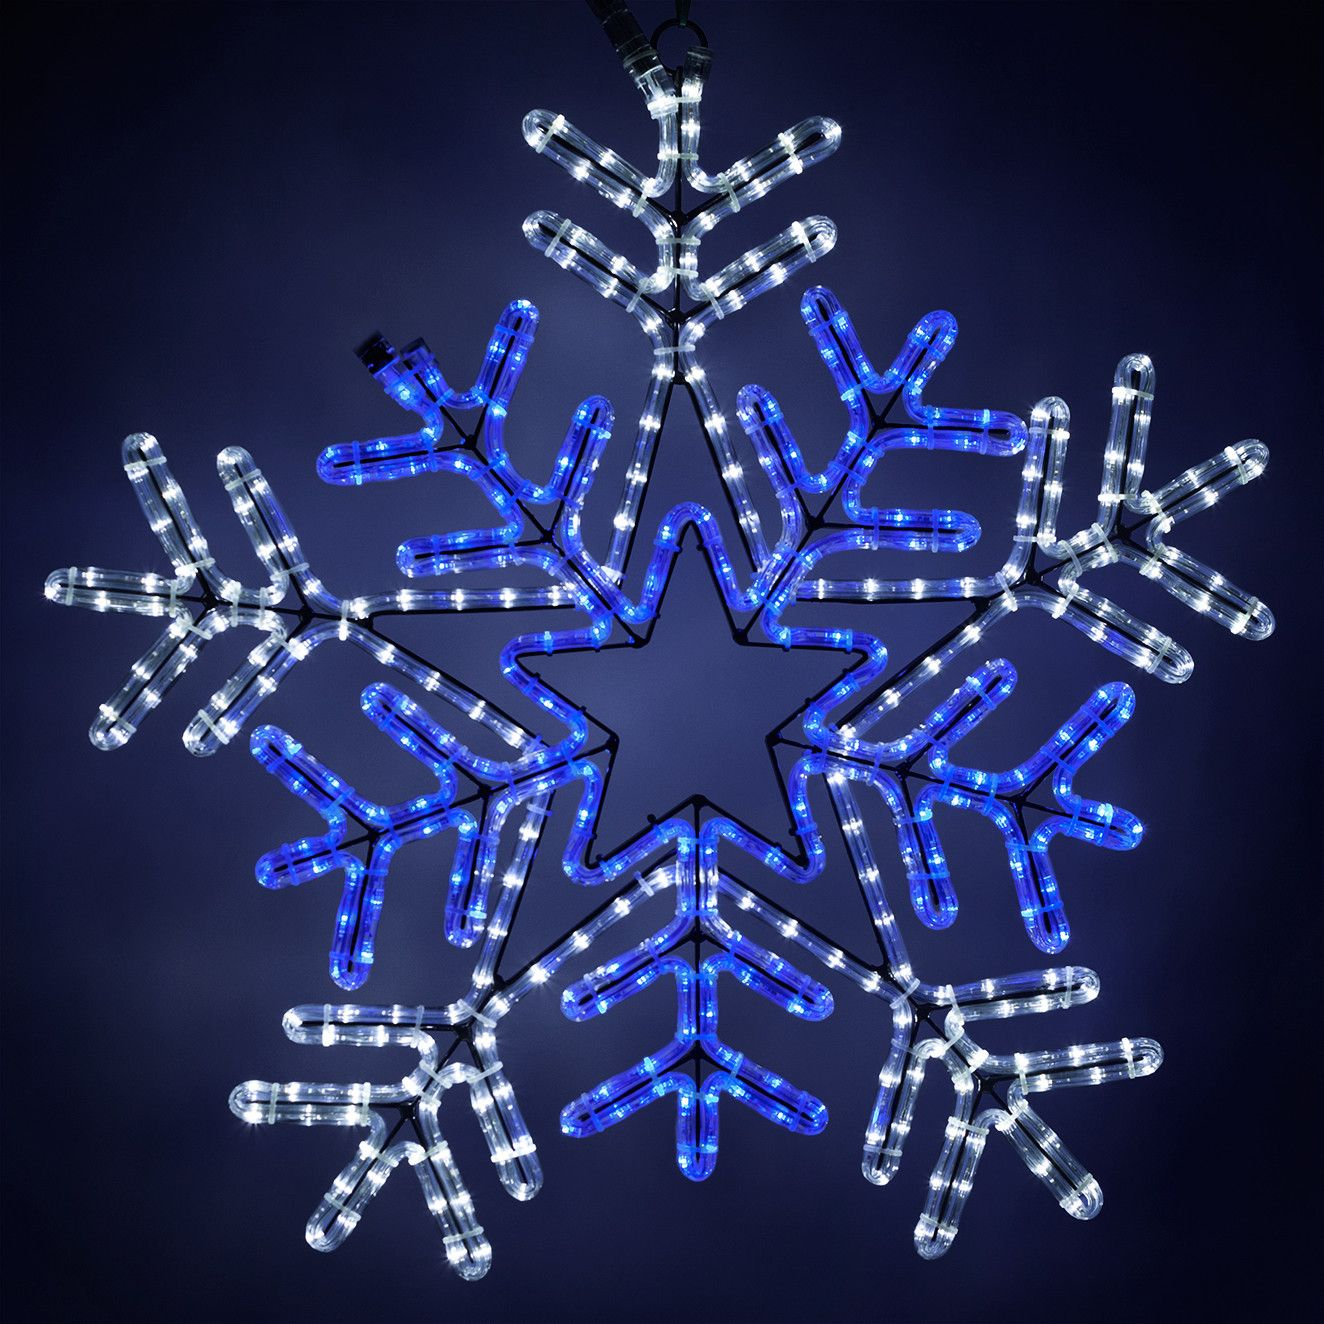 Led Snowflake With Blue Center Blue And White Lights Christmas Lights Etc Blue And White Led Christmas Lights Lights